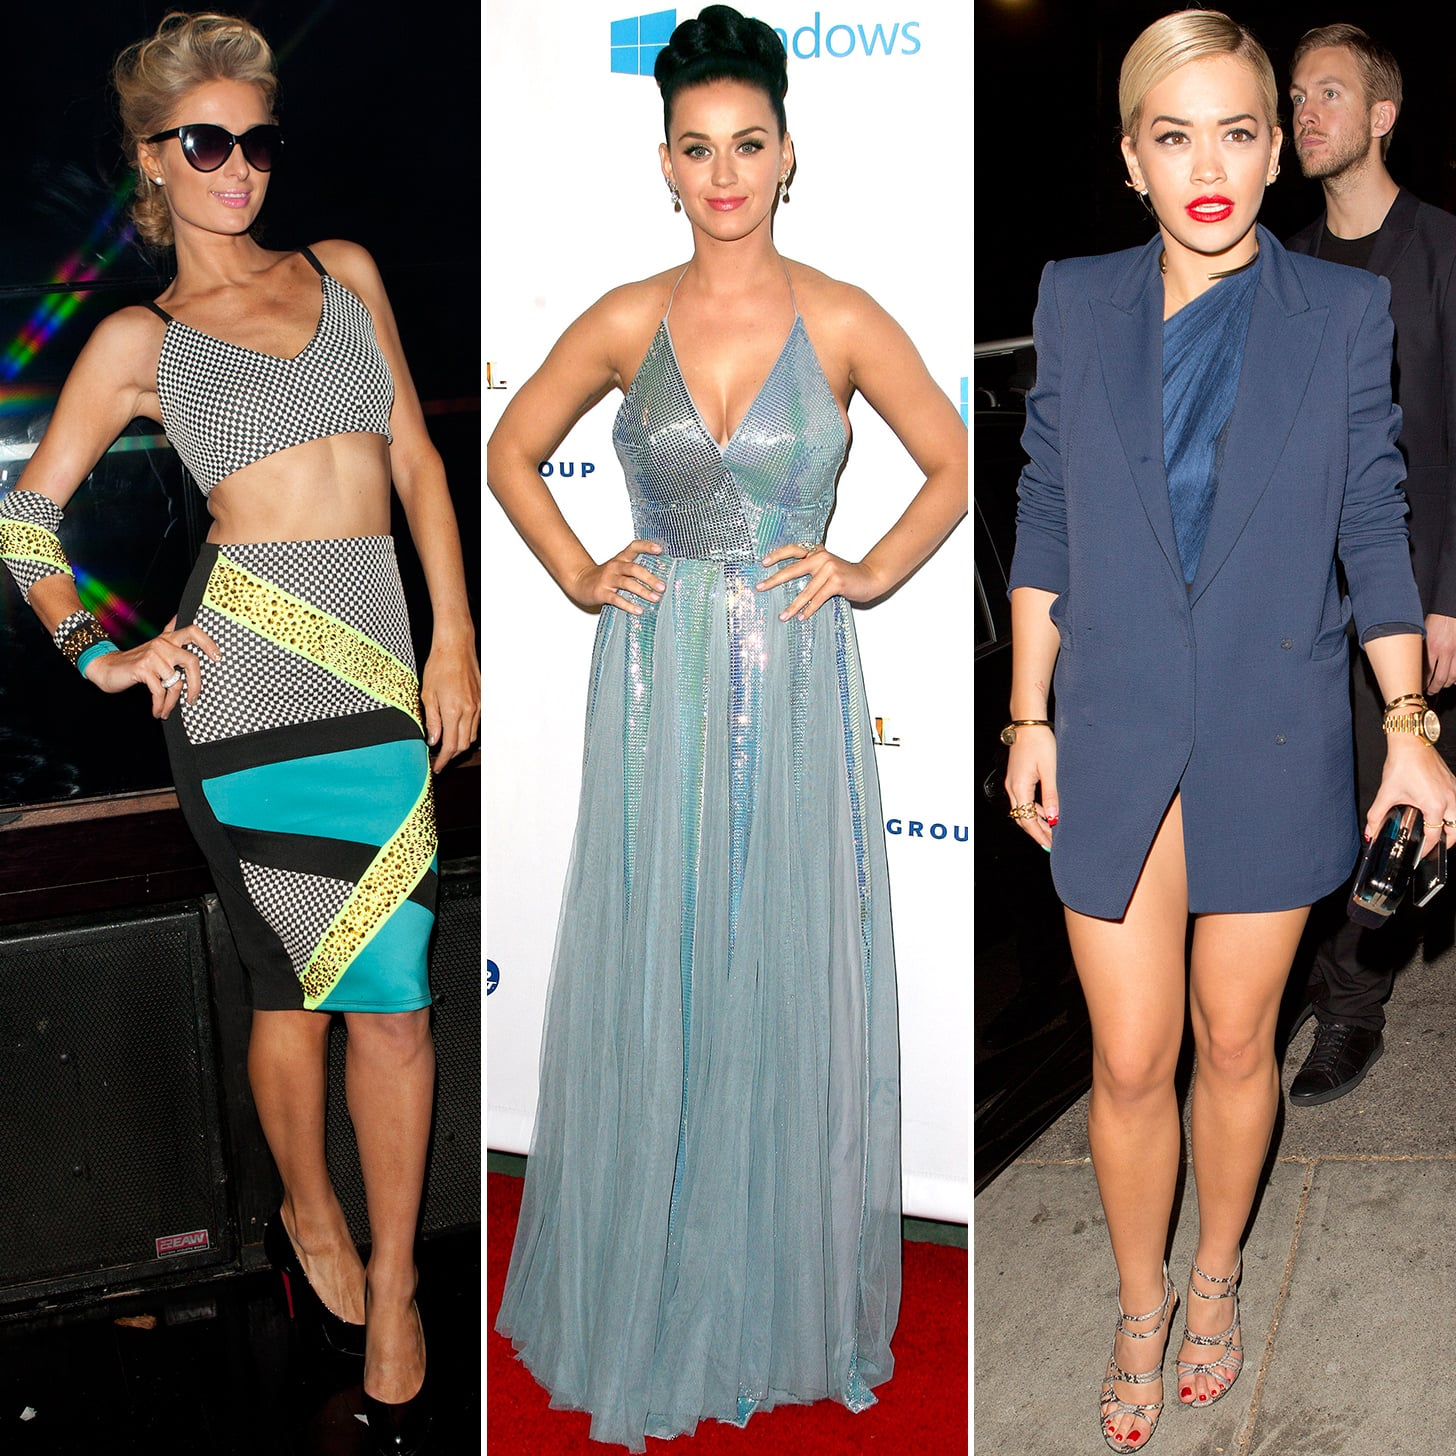 Katy Perry in Blue Dress at Grammys Afterparty | Grammys 2014 ...